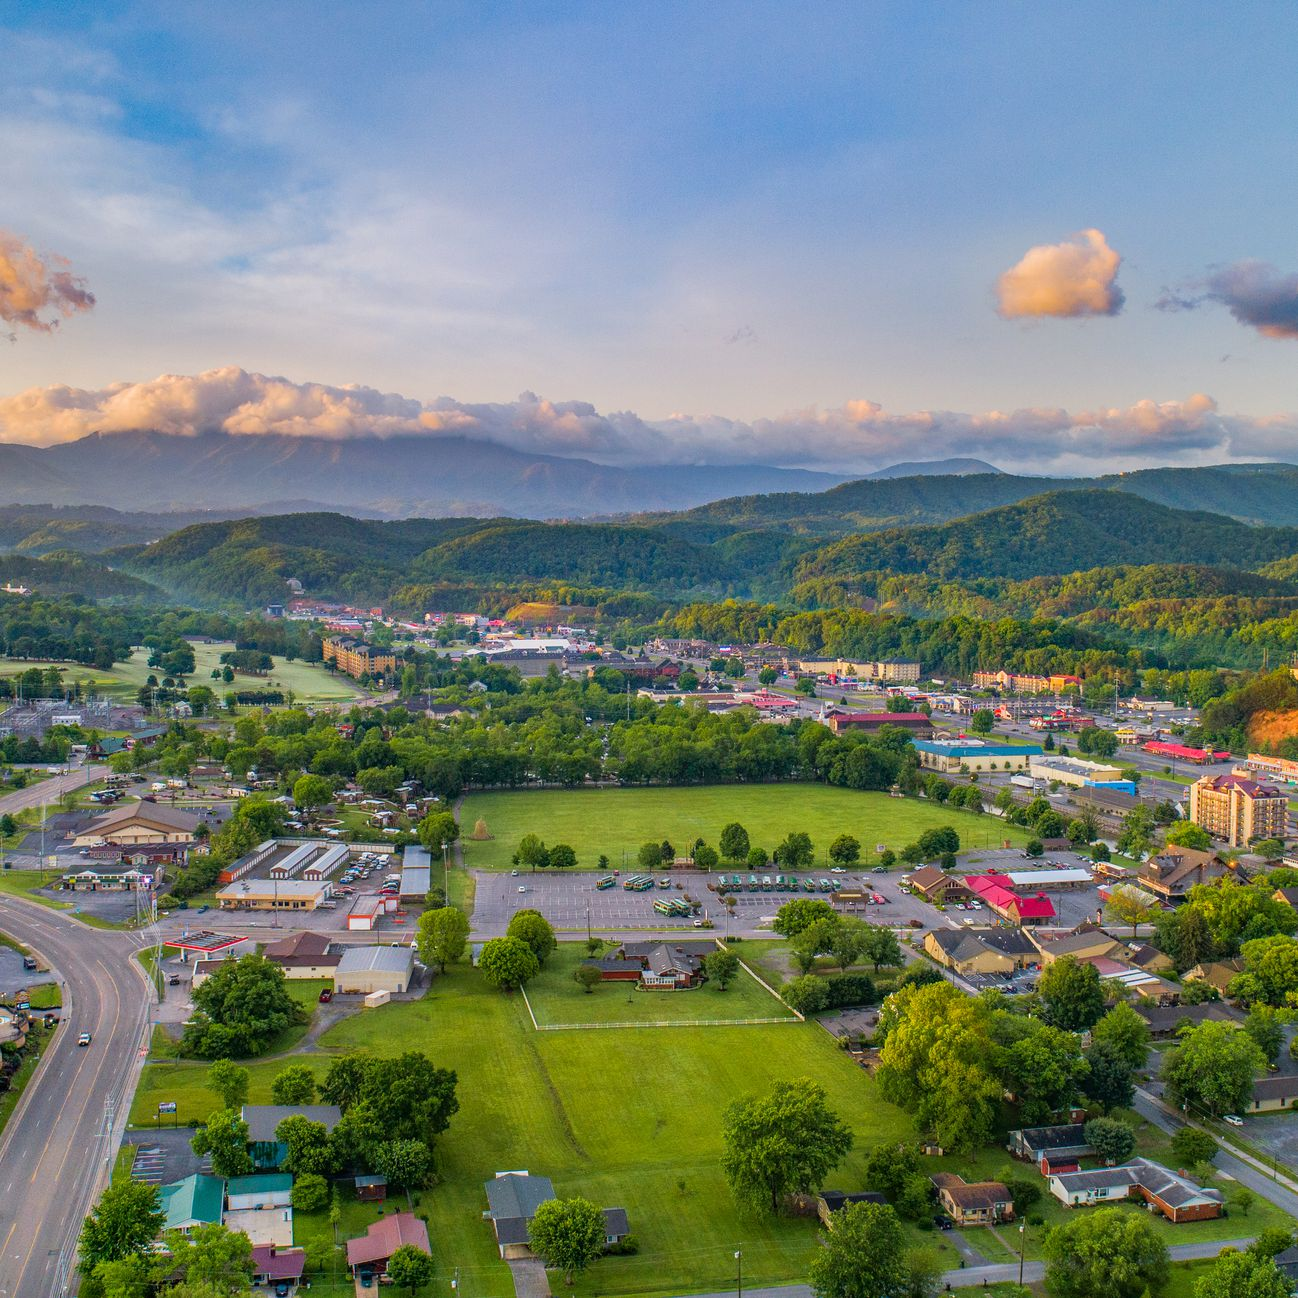 The 10 Best Things to Do in Pigeon Forge, Tennessee